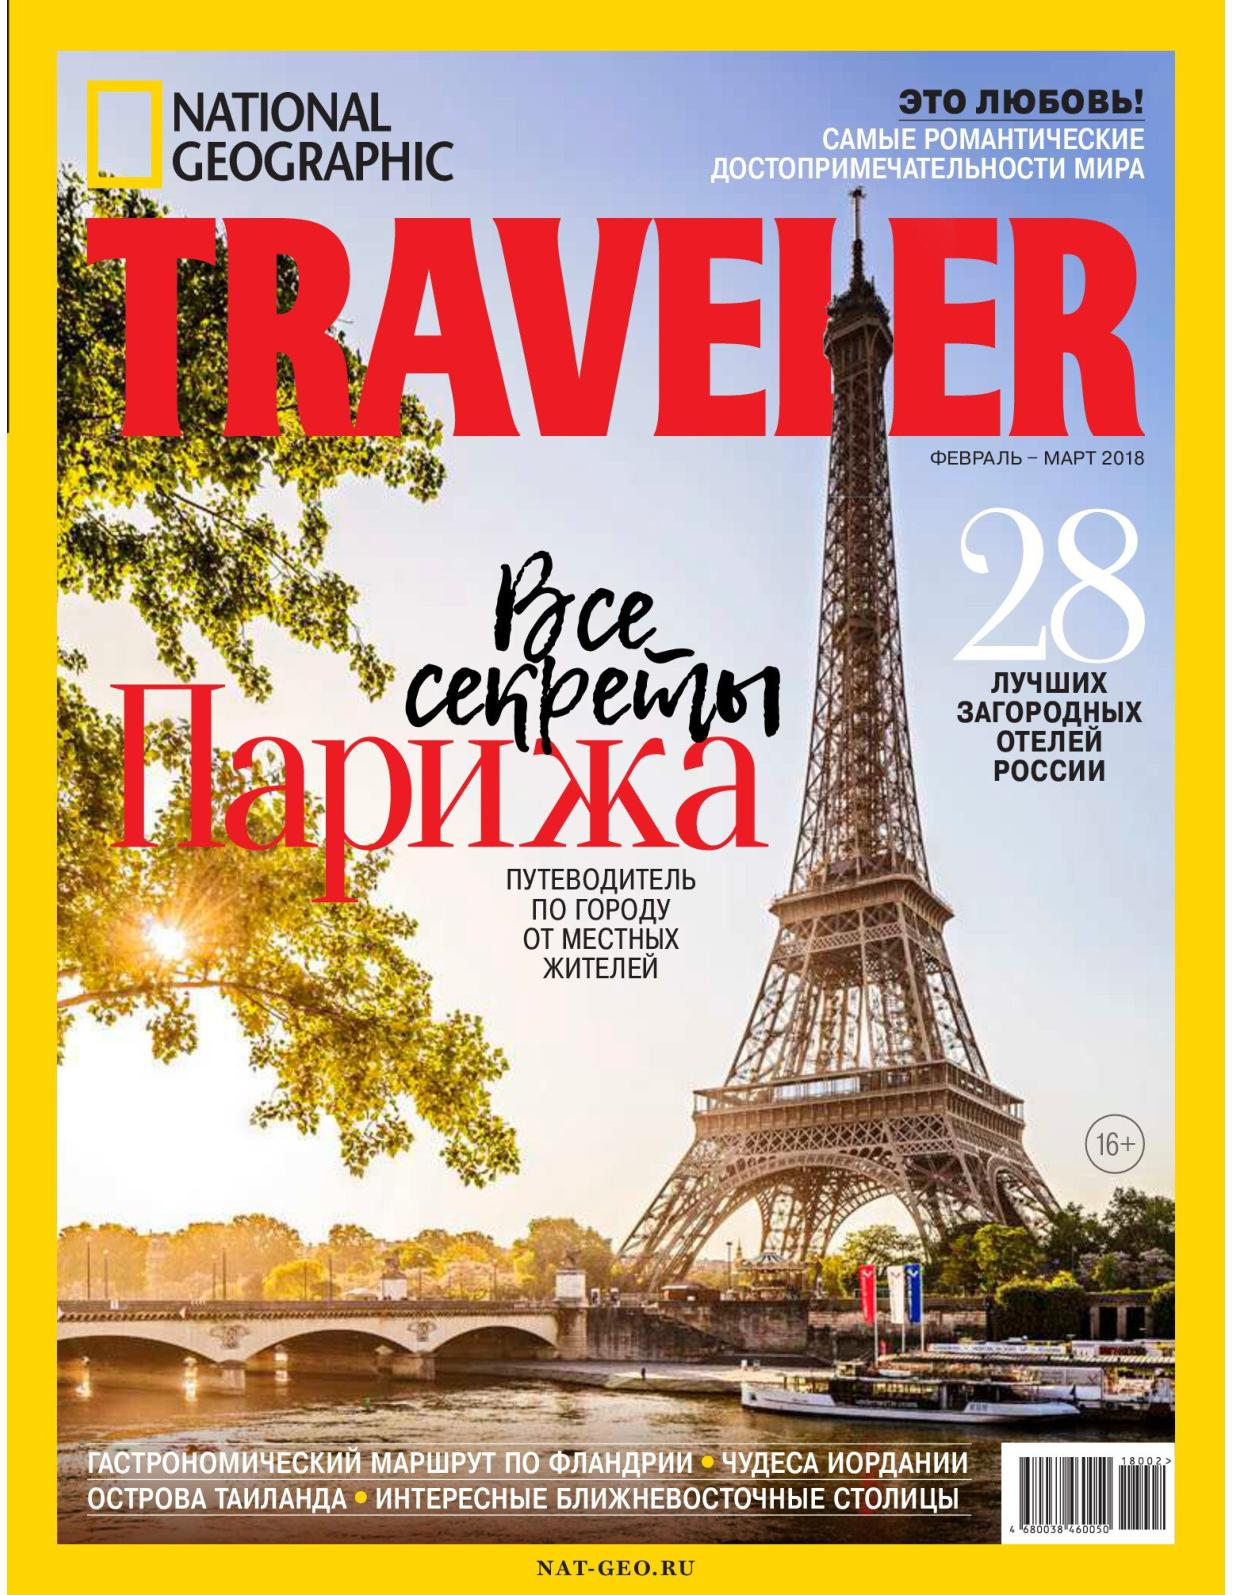 National Geographic Traveler 02 03 2018